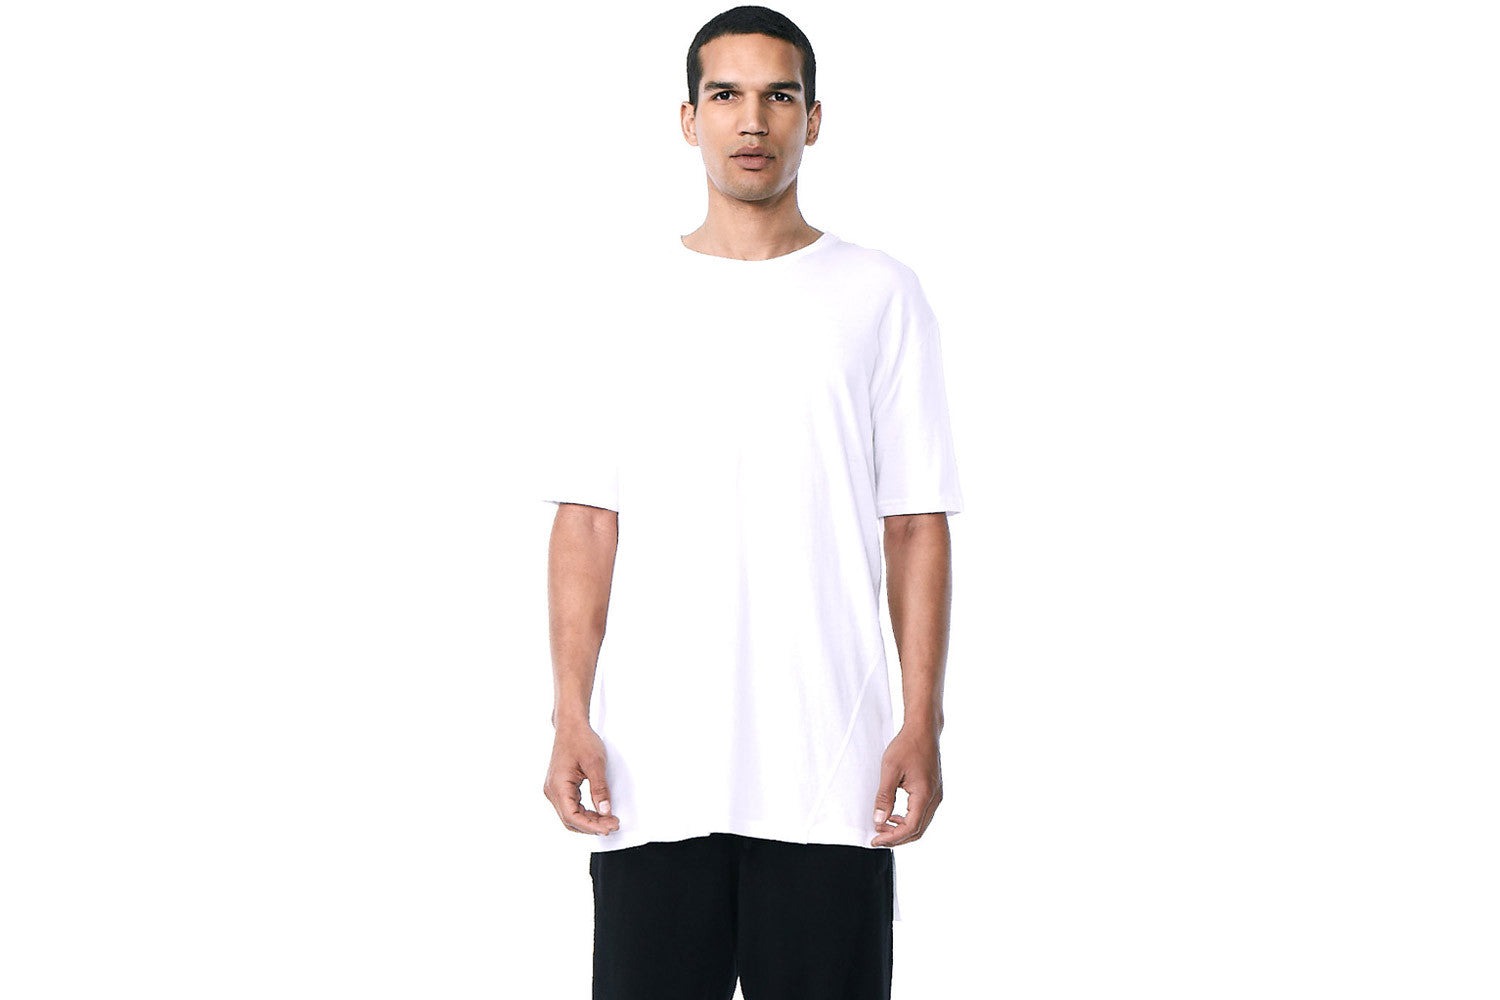 Tyson - Short Sleeve Crew Neck Tee  (White)